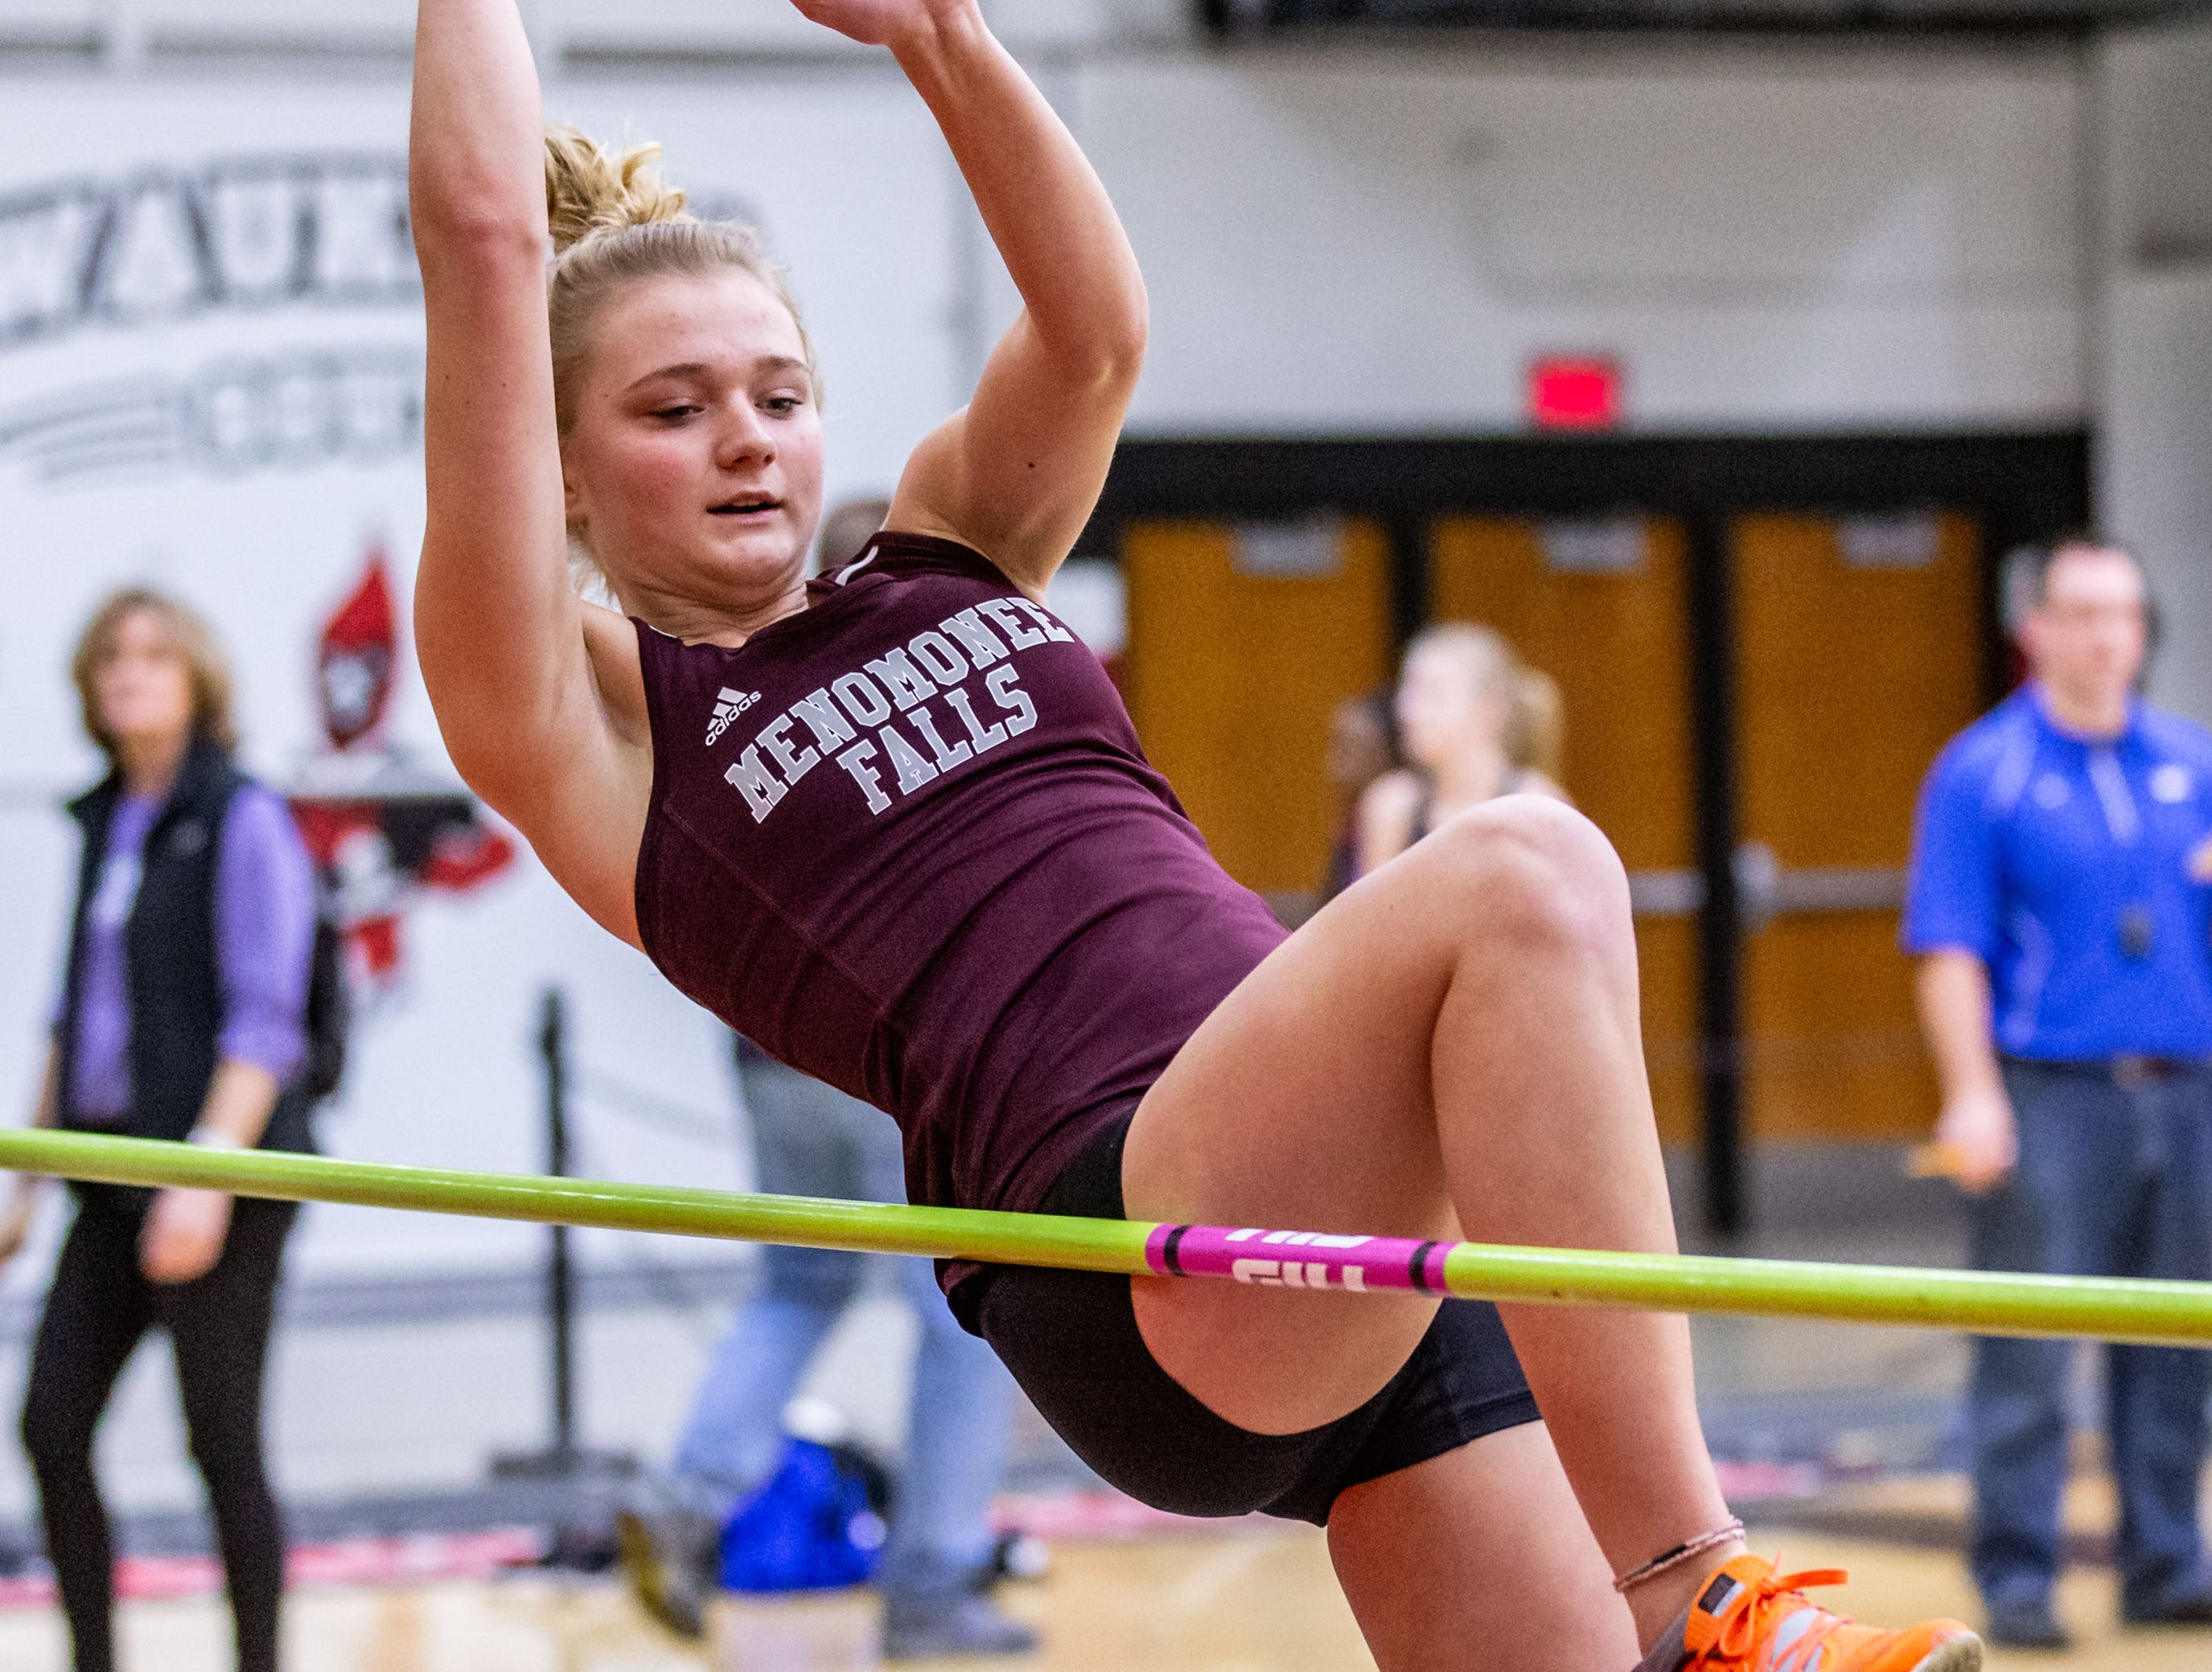 Menomonee Falls sophomore Emma Schoenauer competes in the high jump at the Peter Rempe Cardinal Relays hosted by Waukesha South on Thursday, March 21, 2019.